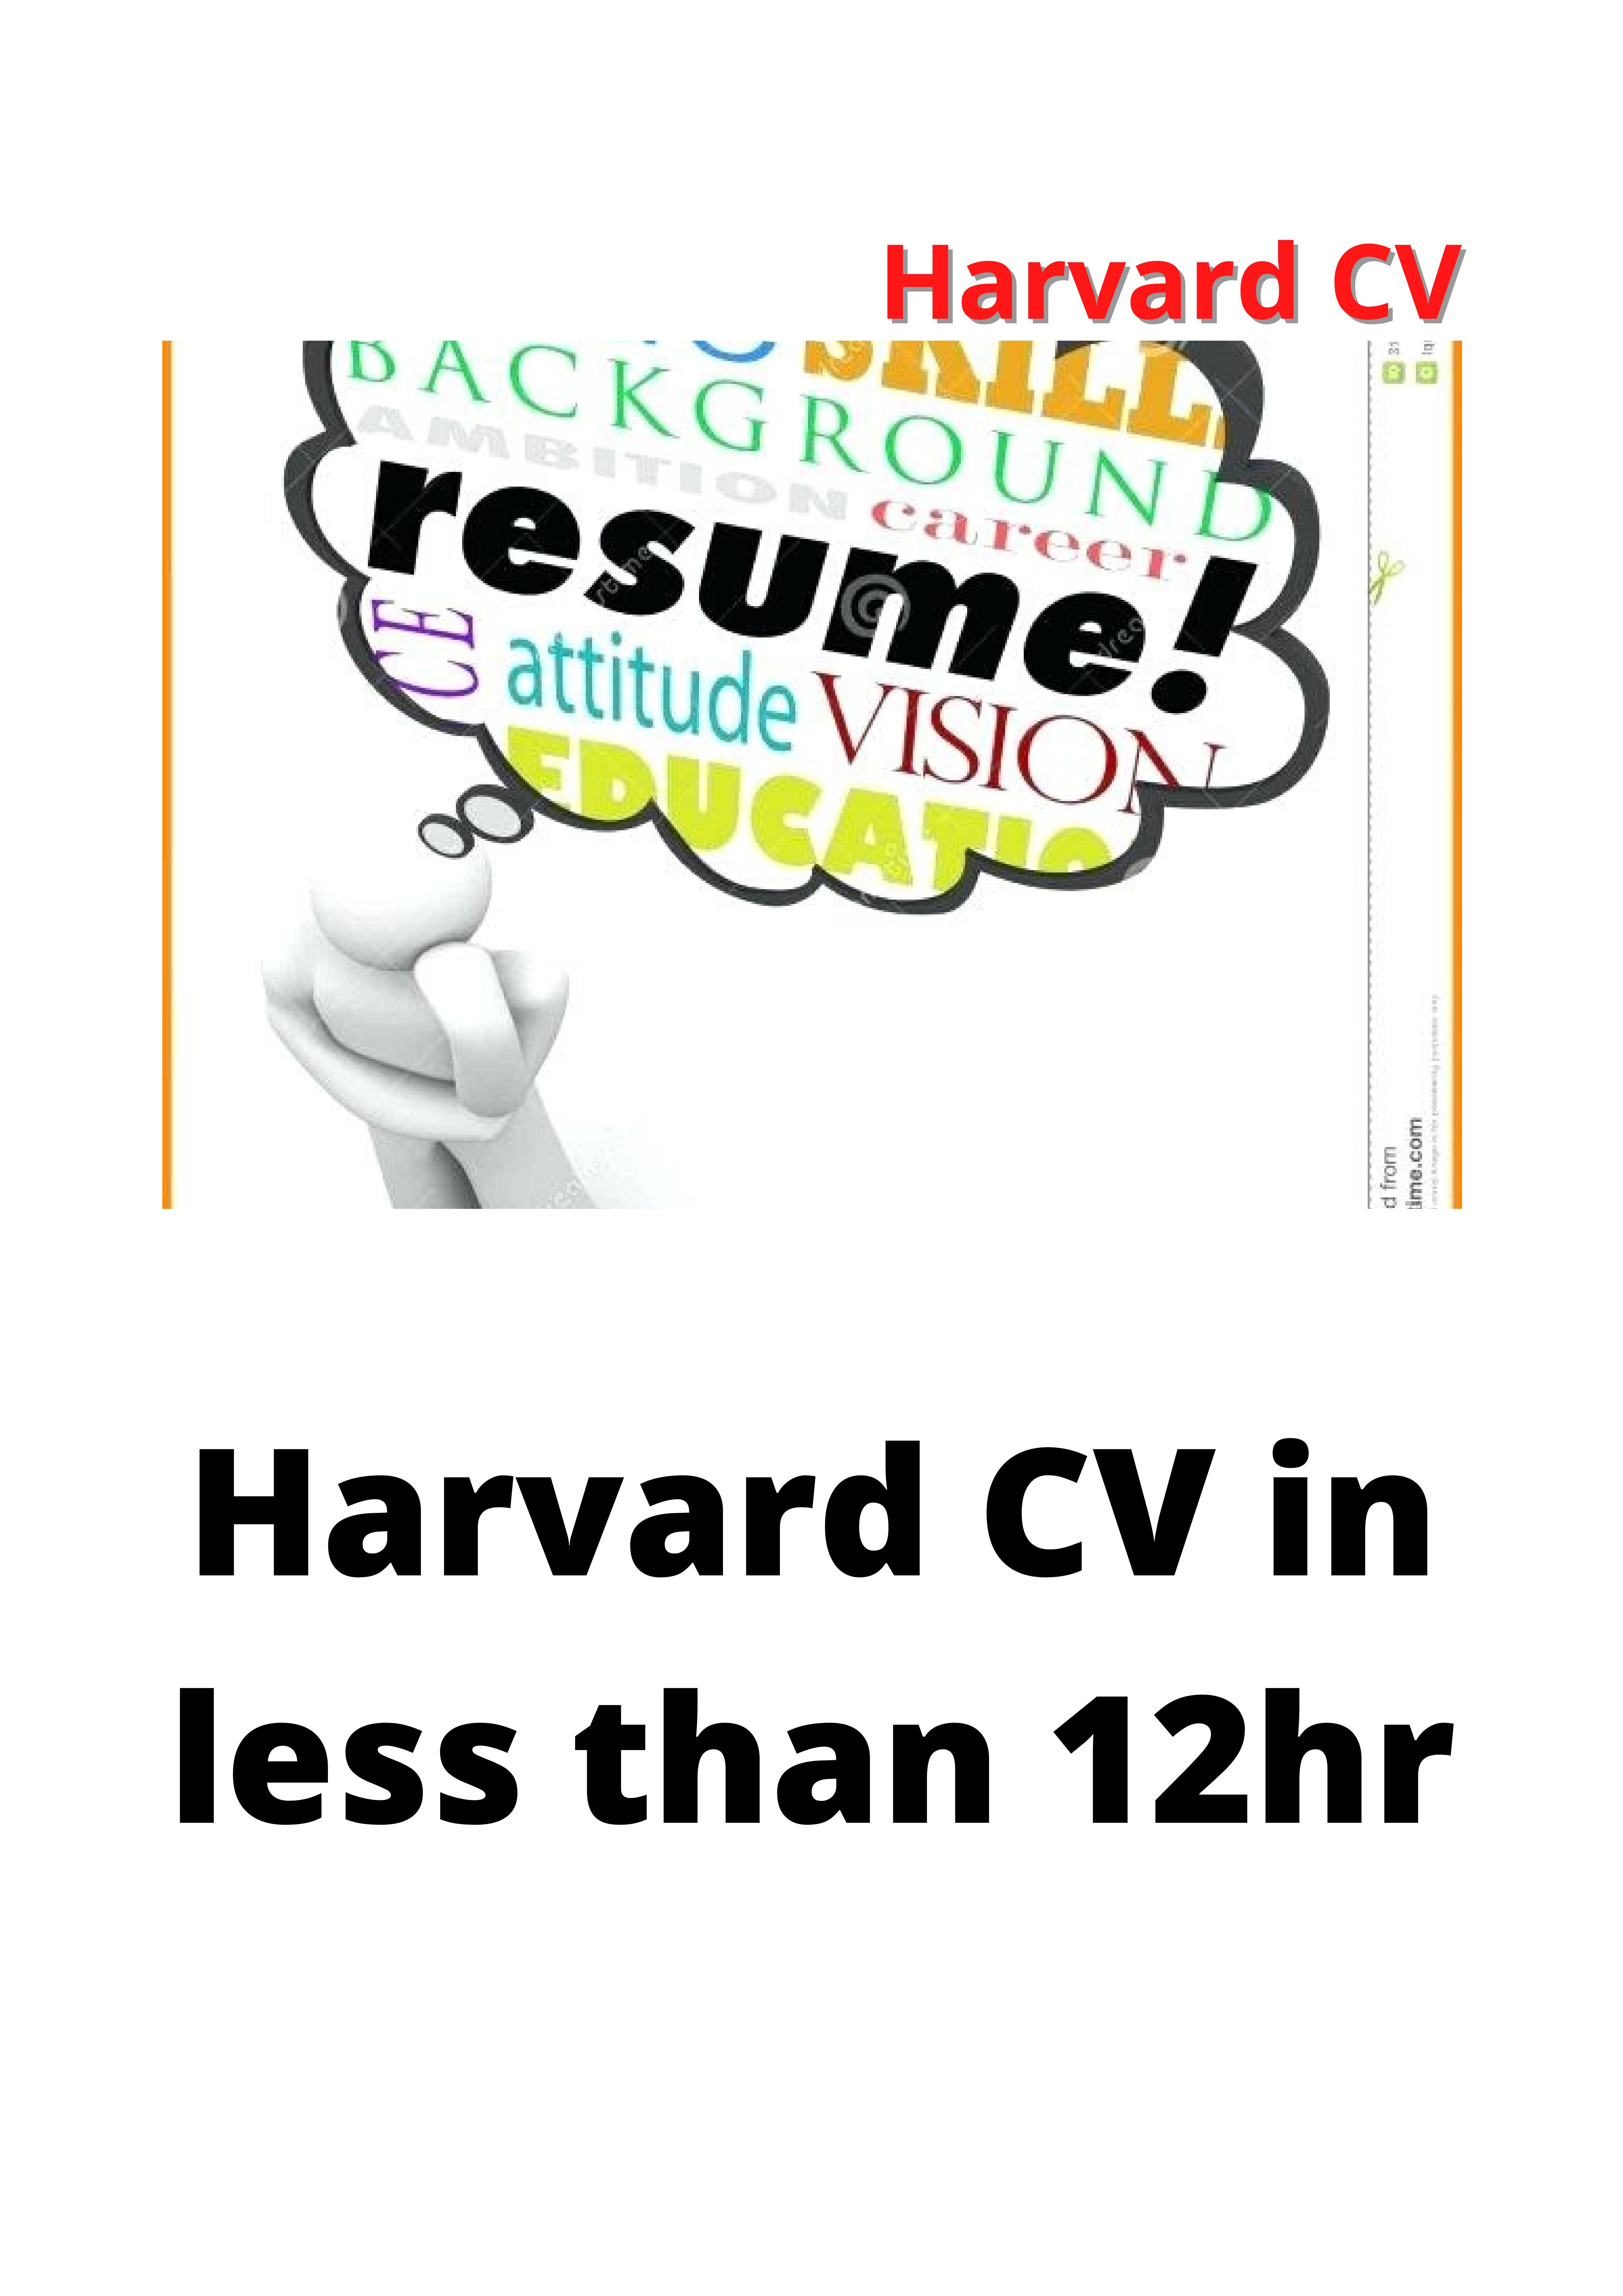 I will produce professional Harvard Style resume and CV in less than 12hr plus job Cover Letter